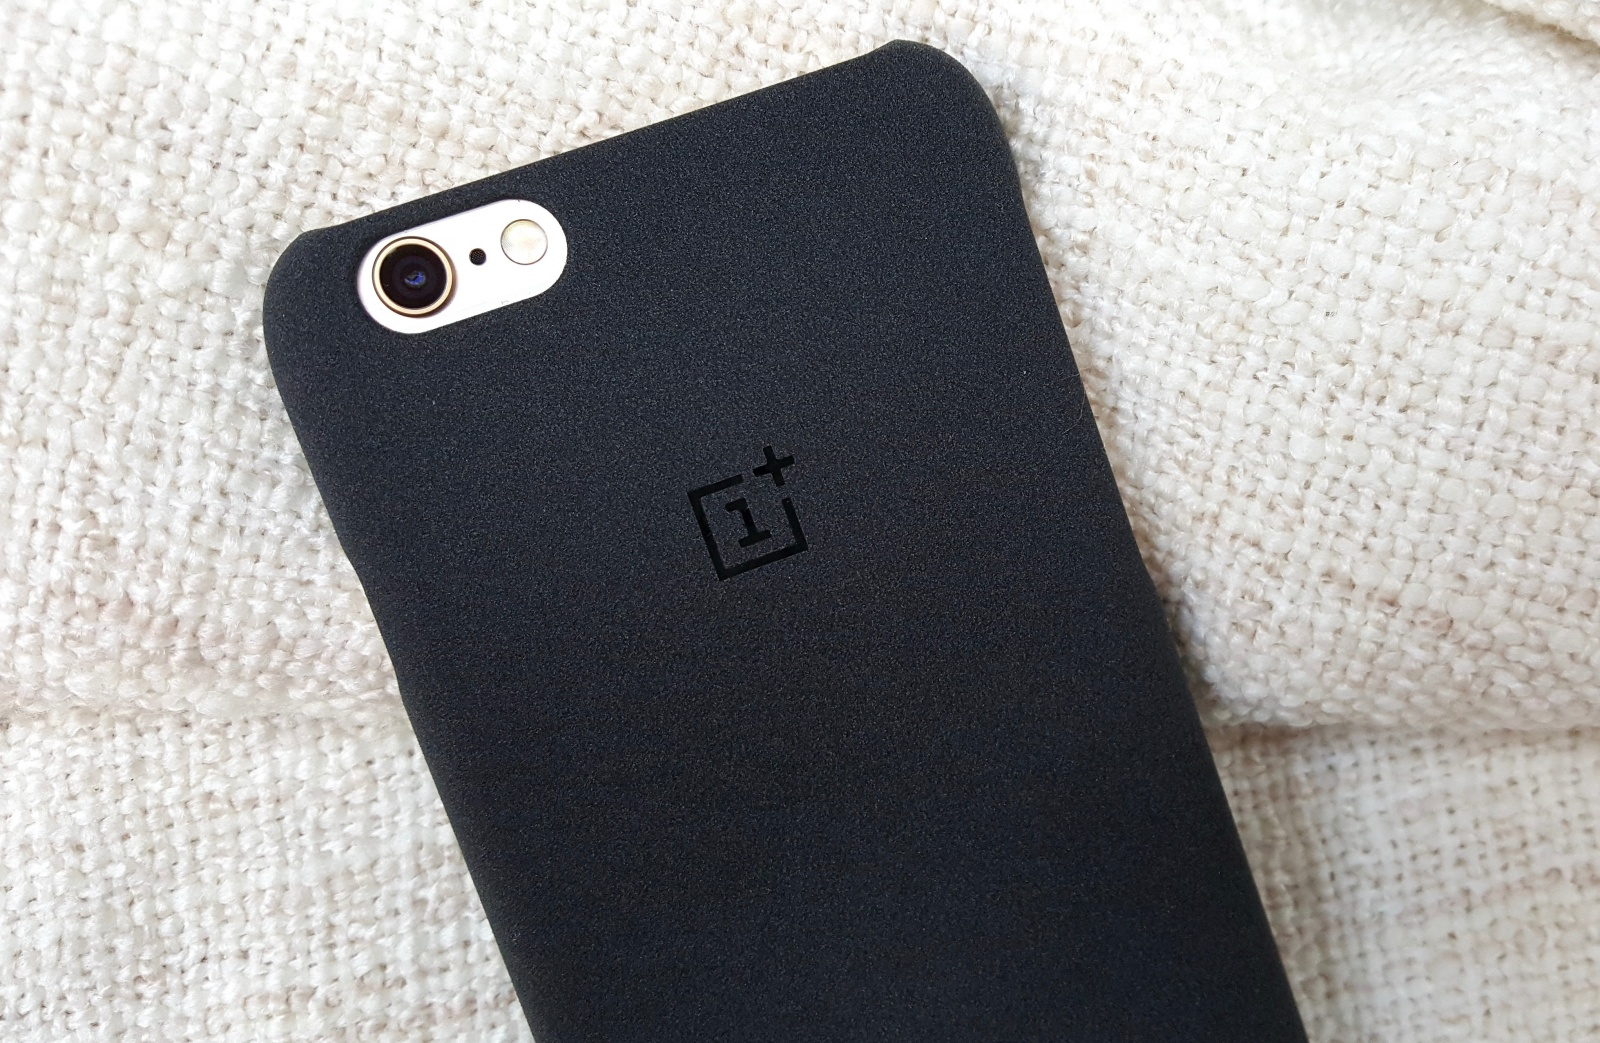 oneplus-launches-a-new-case-for-iphone-image-cultofandroidcomwp-contentuploads2015122015-12-01-112229-jpg